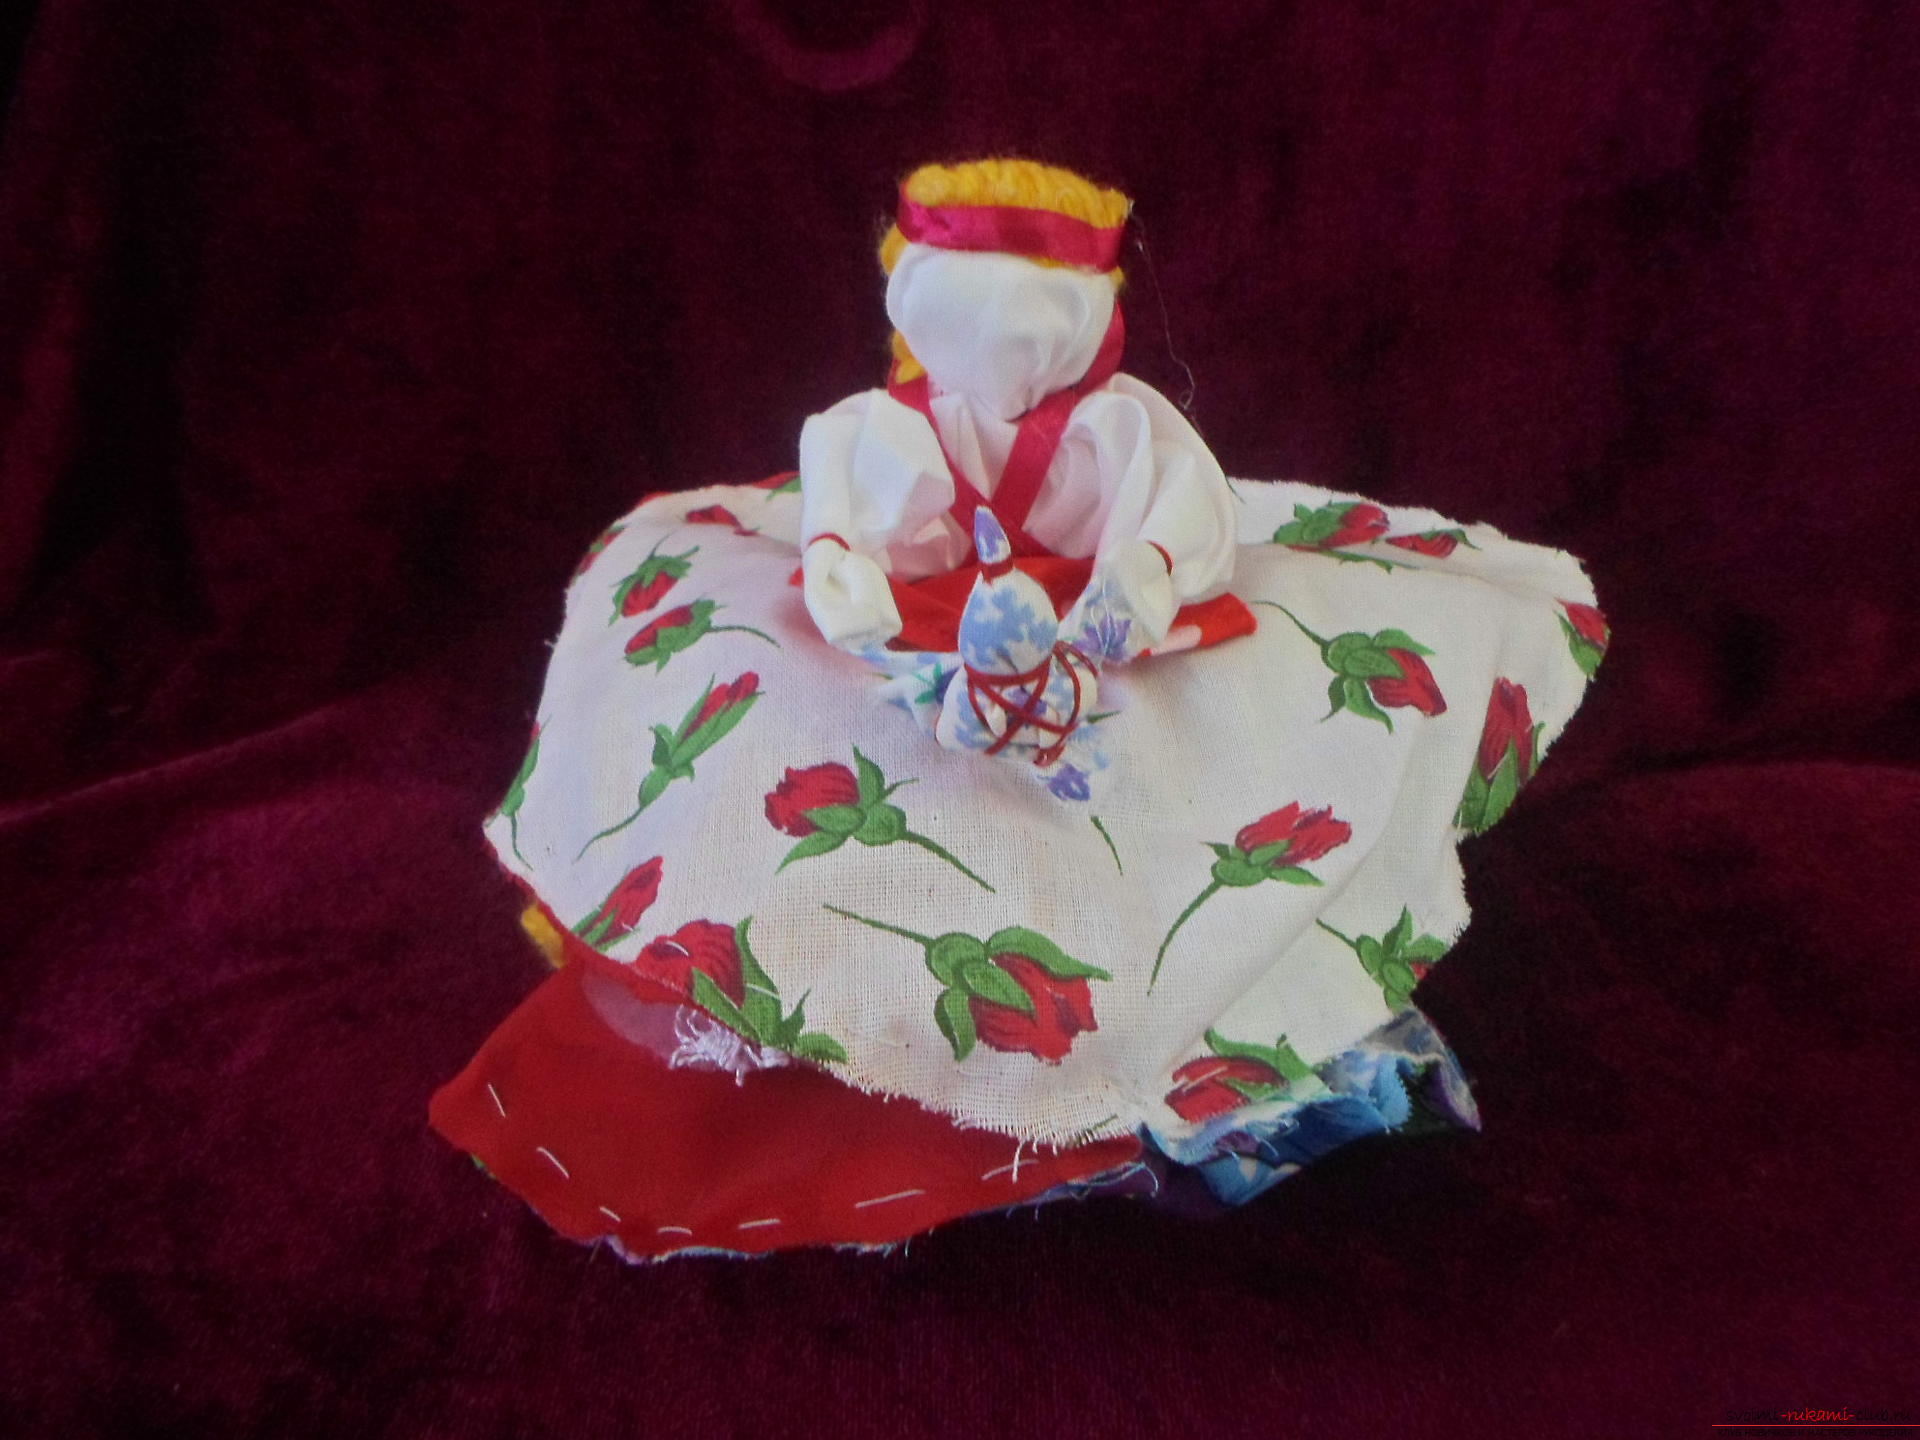 Slavic dolls, amulets for children's games and interior decorations in the Old Russian style. Photo №5